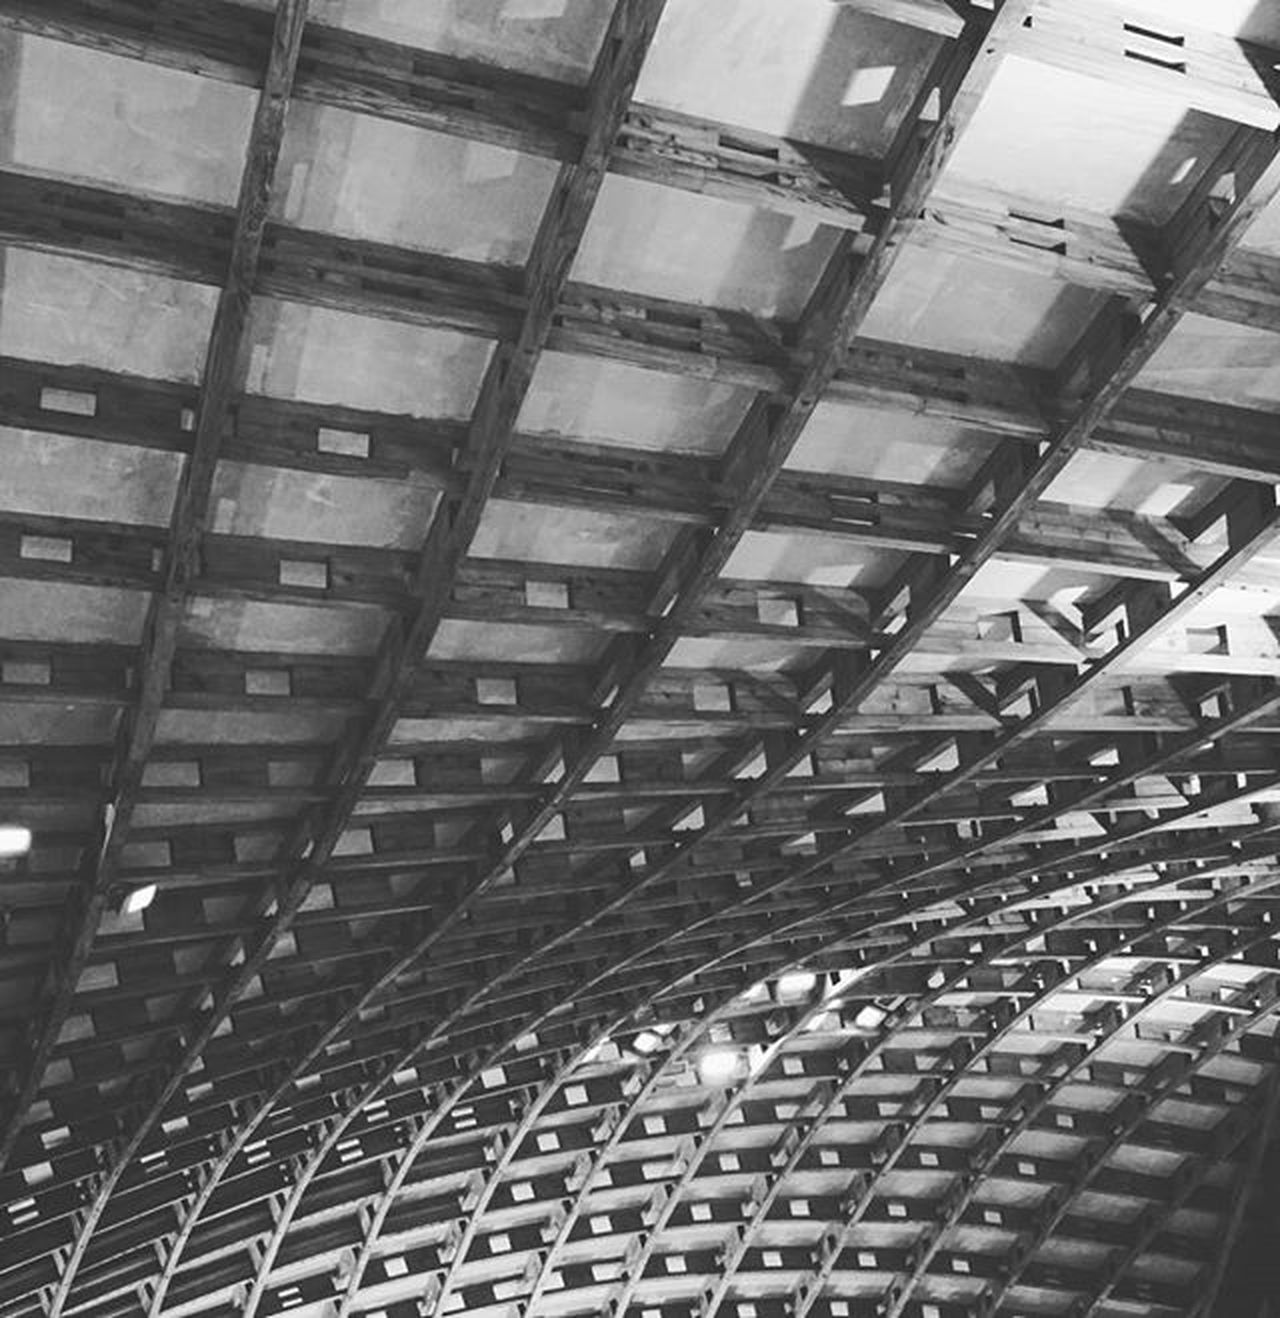 Even the roof is beautiful. Building Architecture Savillegarden Virginiawater Royalpark Surrey Ig_captures Gardens England Photography Instagram Blackandwhite Carpentry Woodwork  Create Design Build Explore Instamood Instagood Life Earth Awesome Inspiration